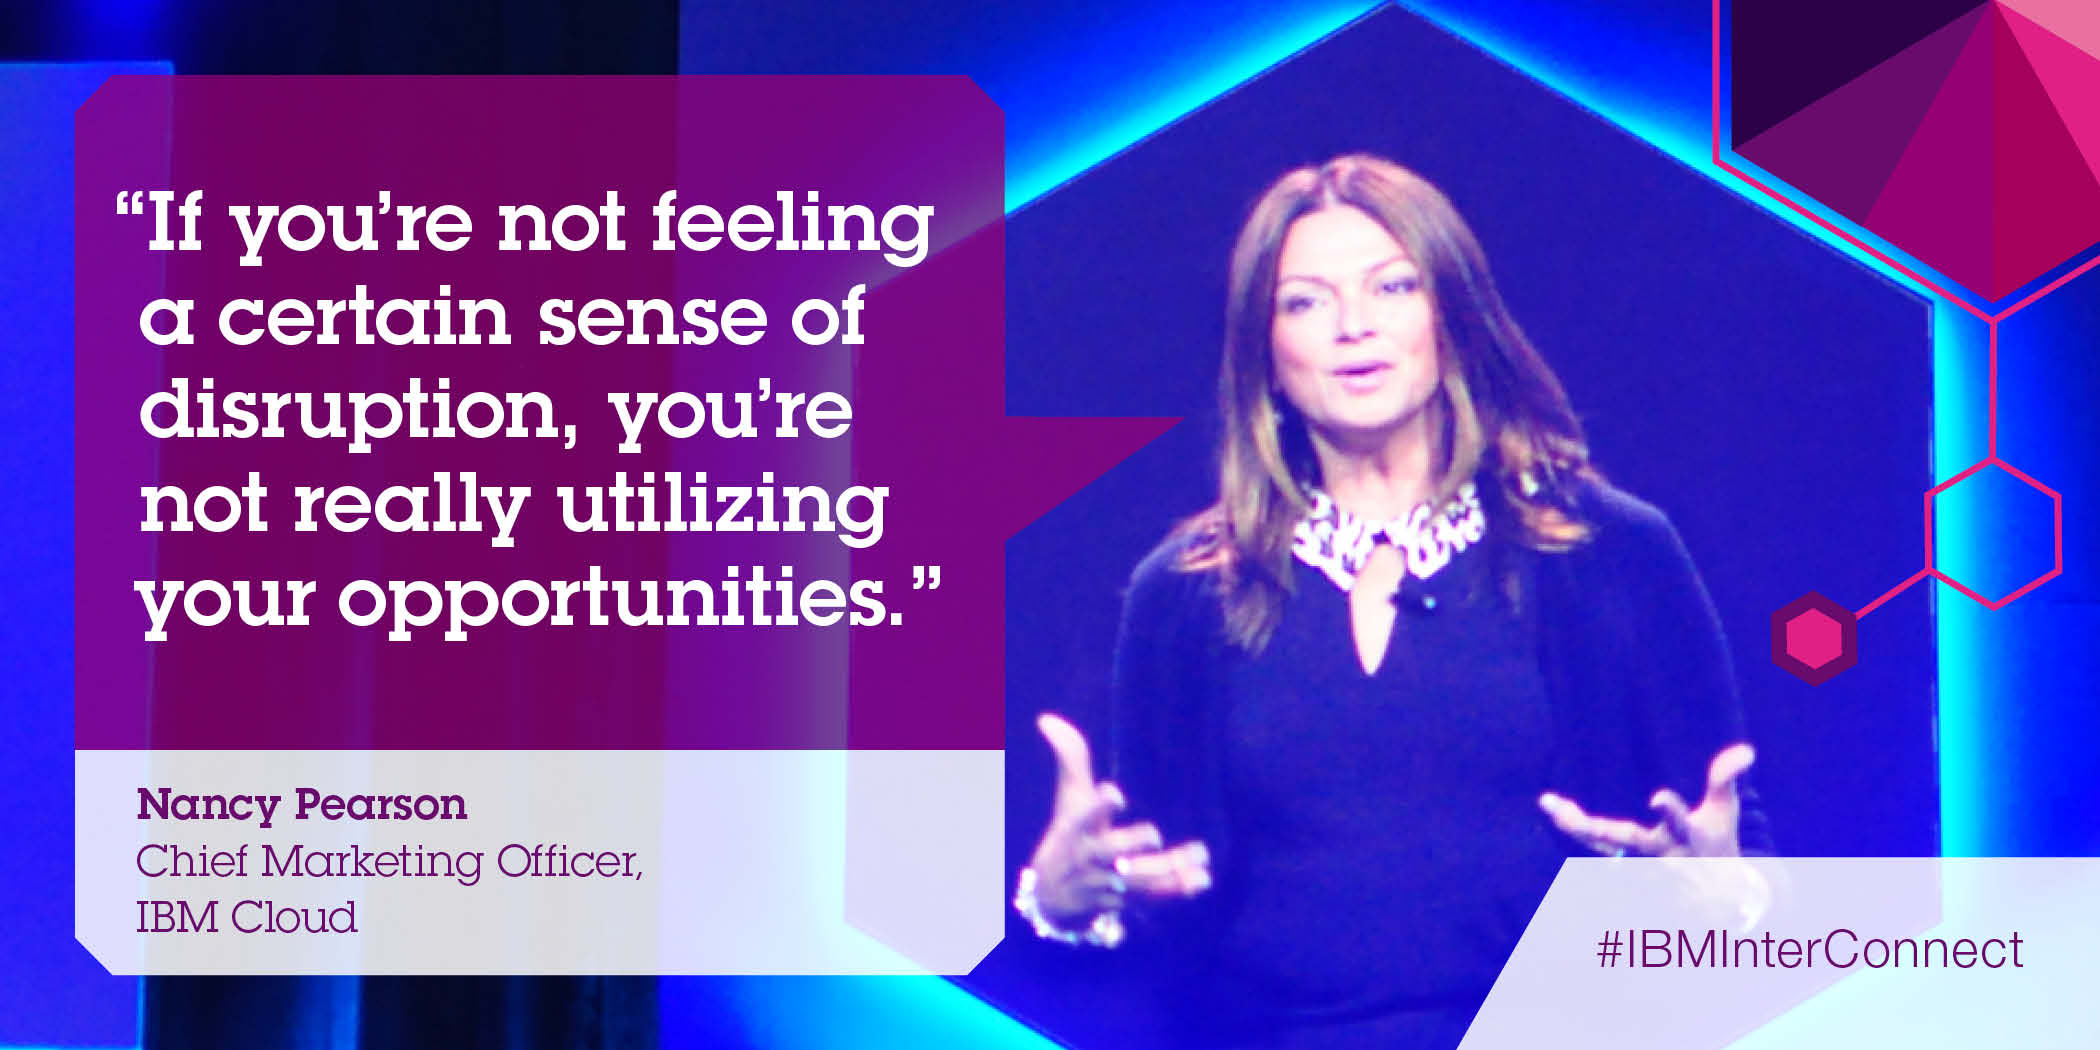 Nancy Pearson delivers a keynote address at IBM InterConnect 2015